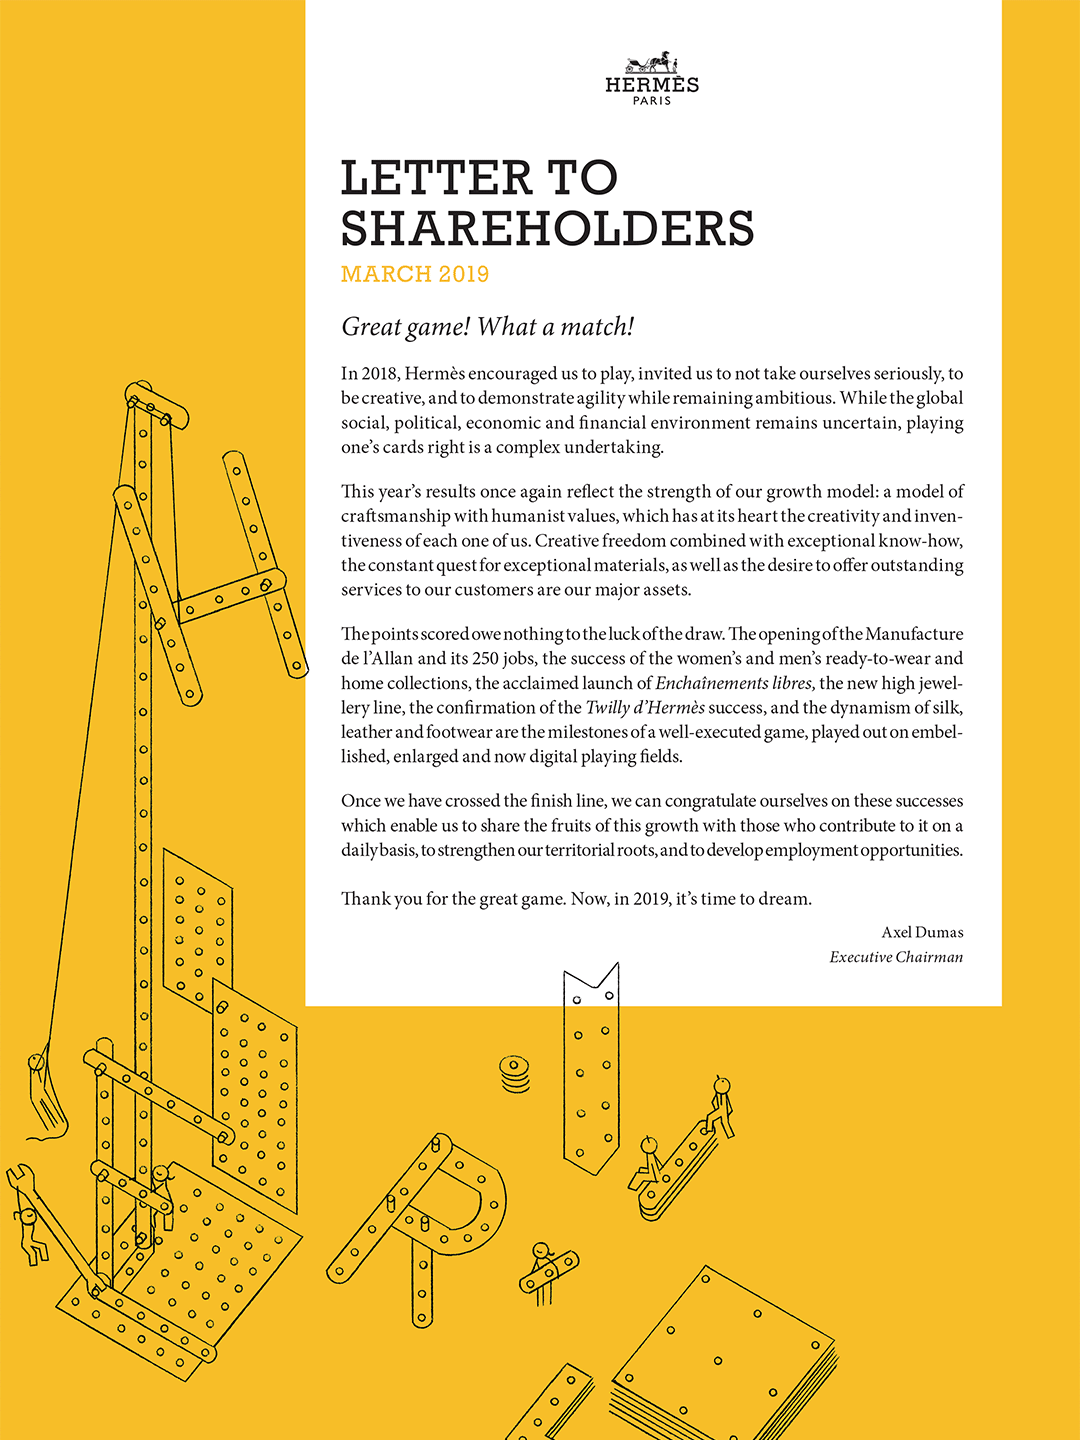 Cover Letter to shareholders - April 2019